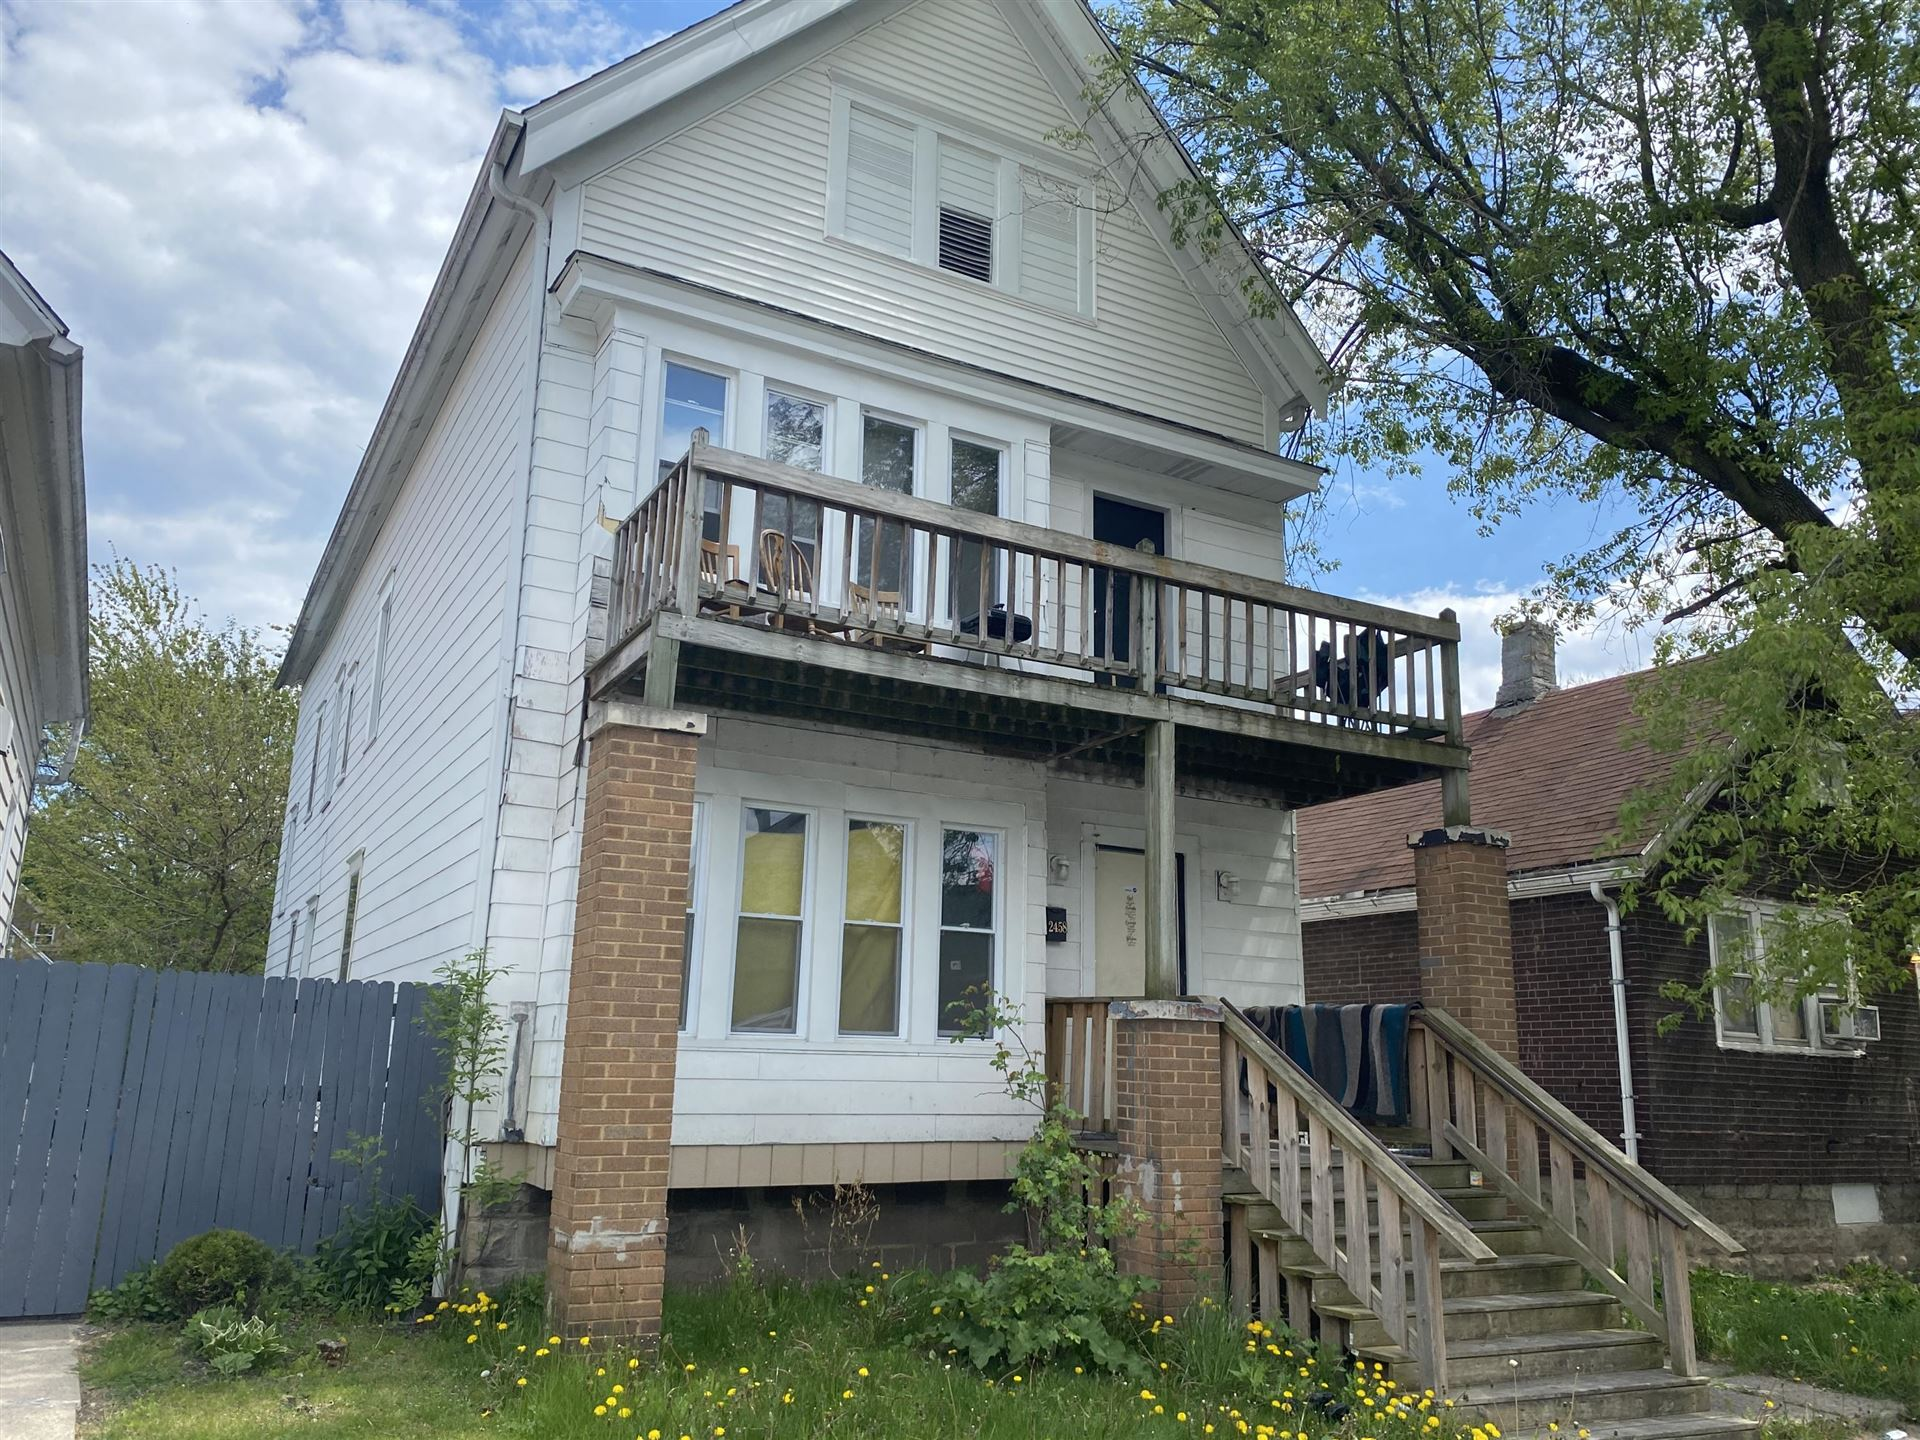 2458 S 11th #2458A, Milwaukee, WI 53215 - MLS#: 1740872